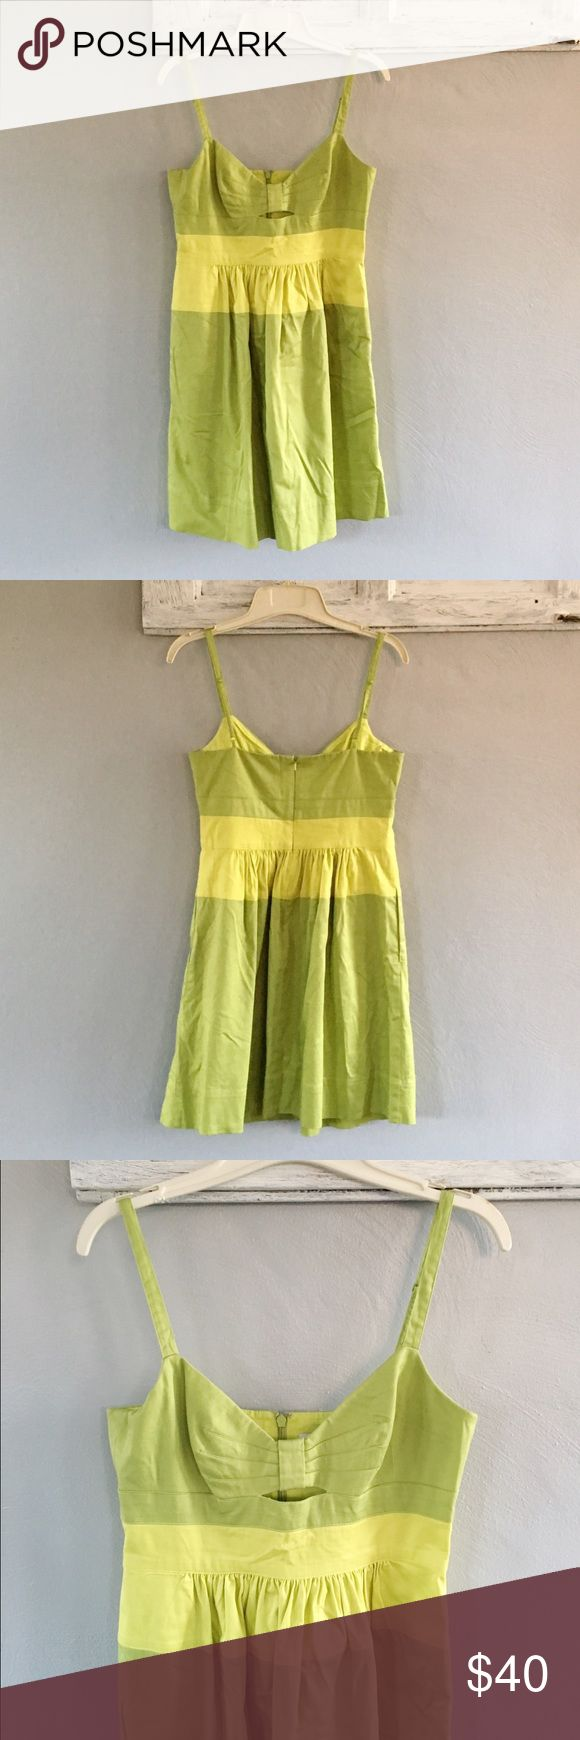 Jessica Simpson lime green color block dress Lime green Jessica Simpson dress. Cute bow bust with small cutout. Great for a night out on the town! Measurements in inches with the garment laying flat •armpit to armpit: 15.5 •waist: 14 •length: 35 bundle with a pair of my earrings to complete the look! Jessica Simpson Dresses Midi